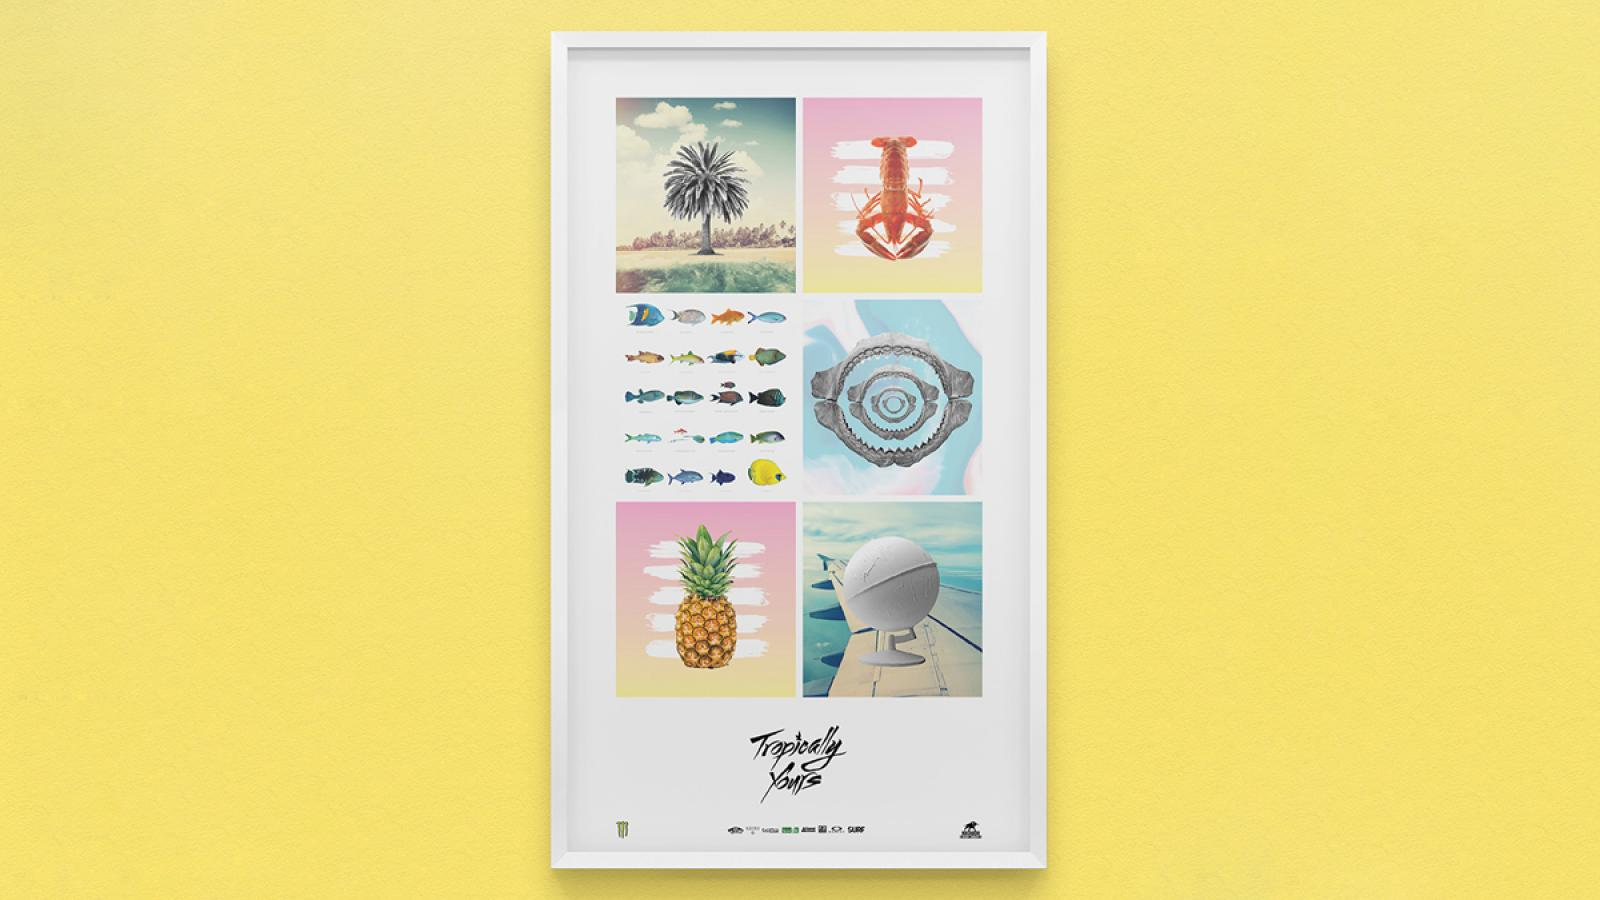 Tropically Yours Identity by Wedge & Lever